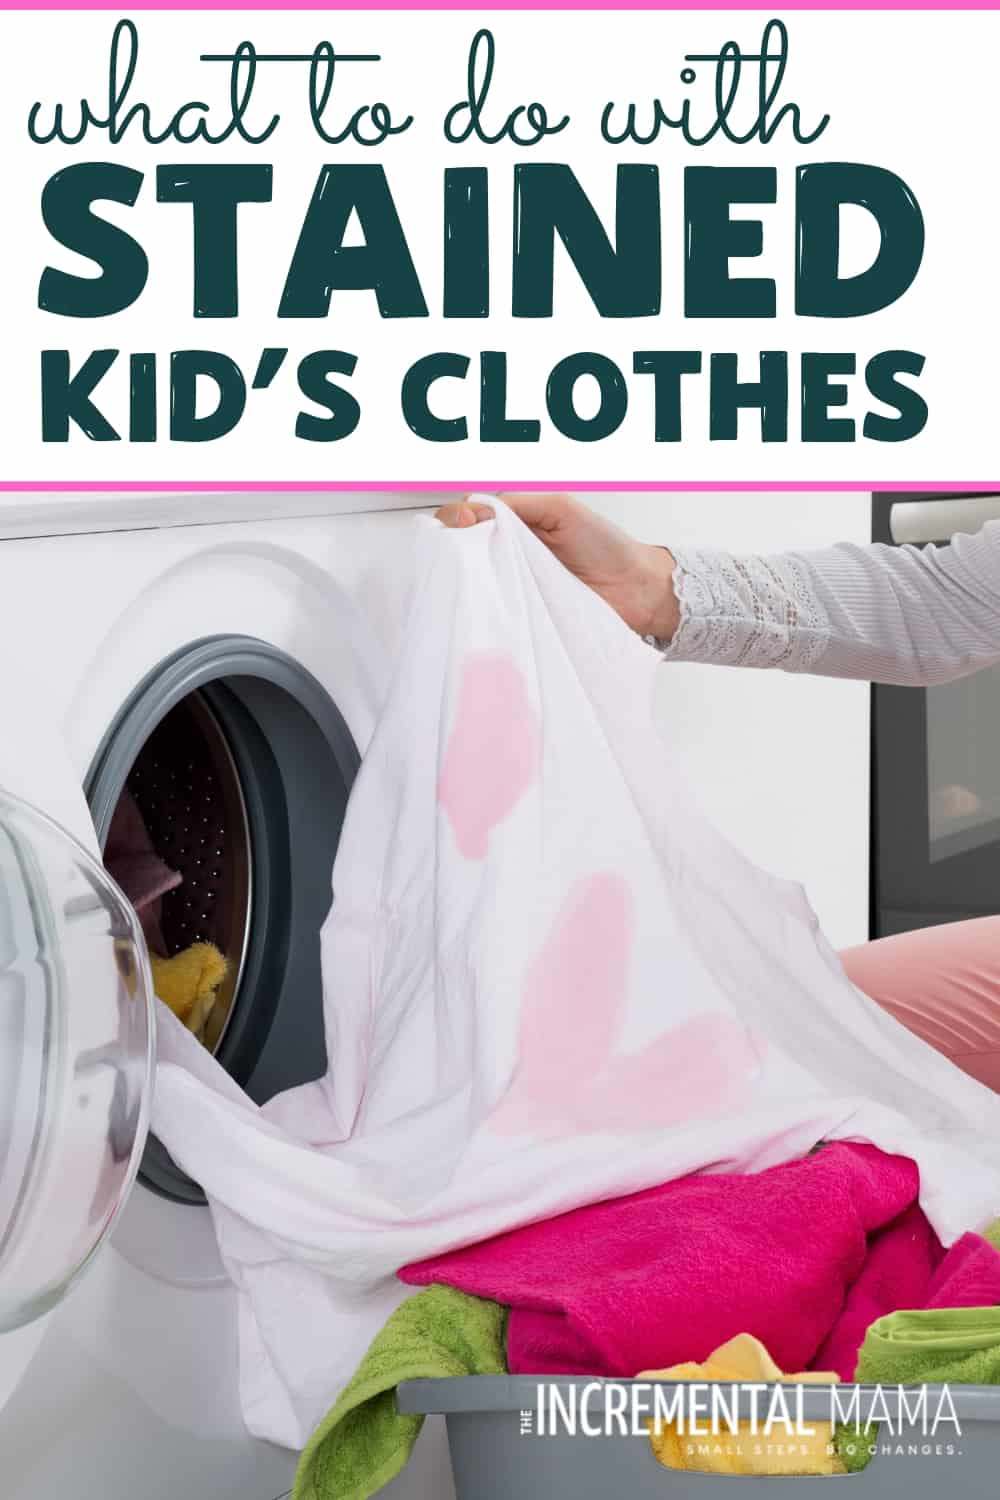 If you've got kids, you've got piles of stained kid's clothes. But with this easy DIY hack with some RIT dye, you can save money and breathe new life into your kid's clothes! #stainedkidsclothes #upcyclestainedclothes